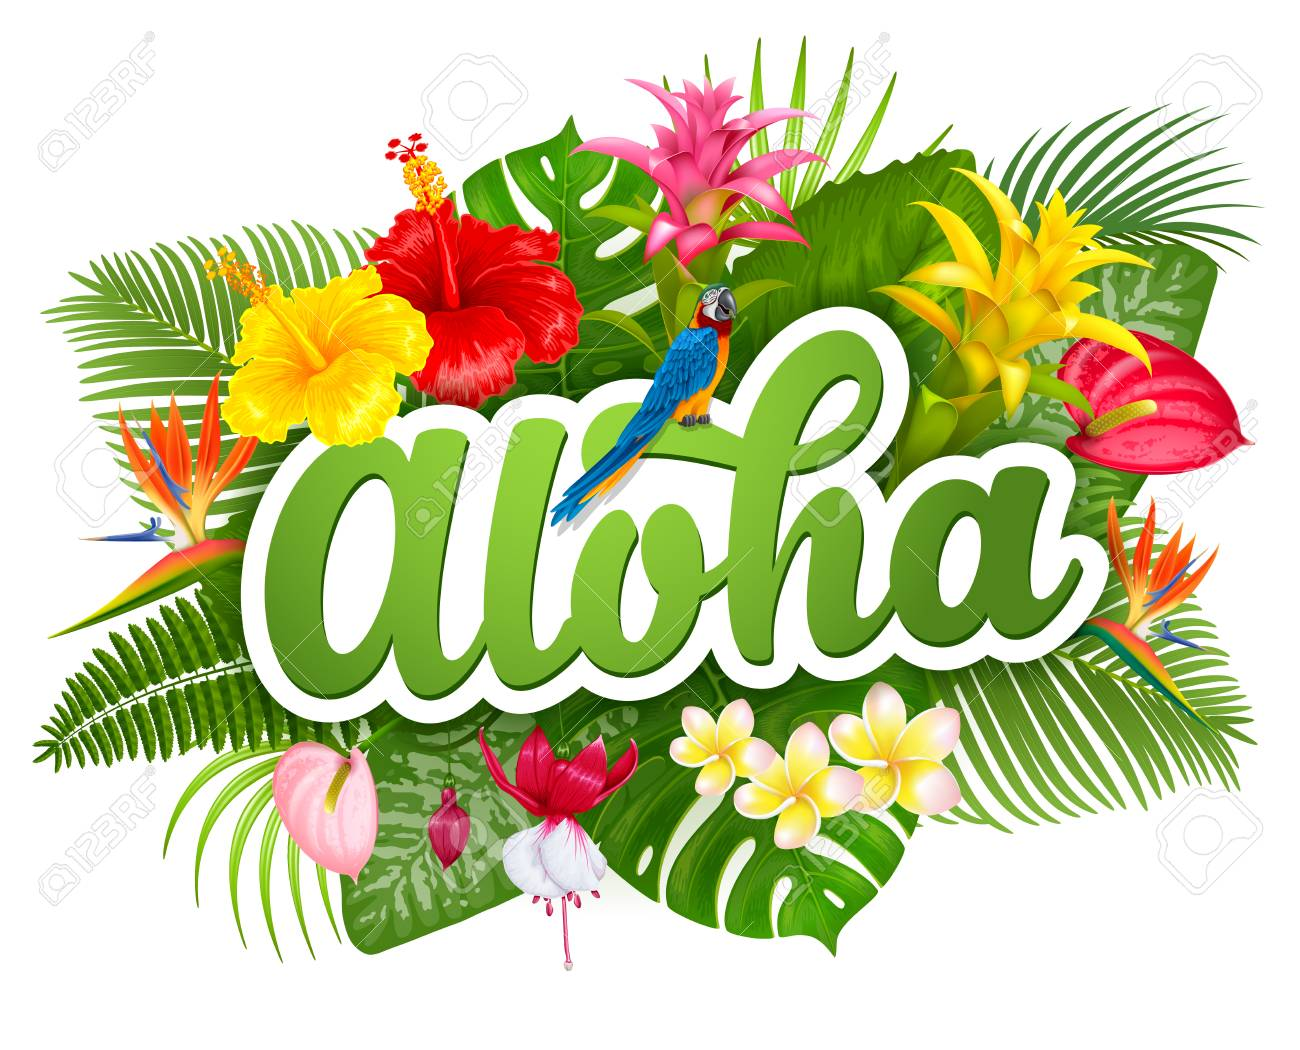 hight resolution of aloha hawaii hand drawn lettering and tropical plants leaves and flowers hawaiian language greeting